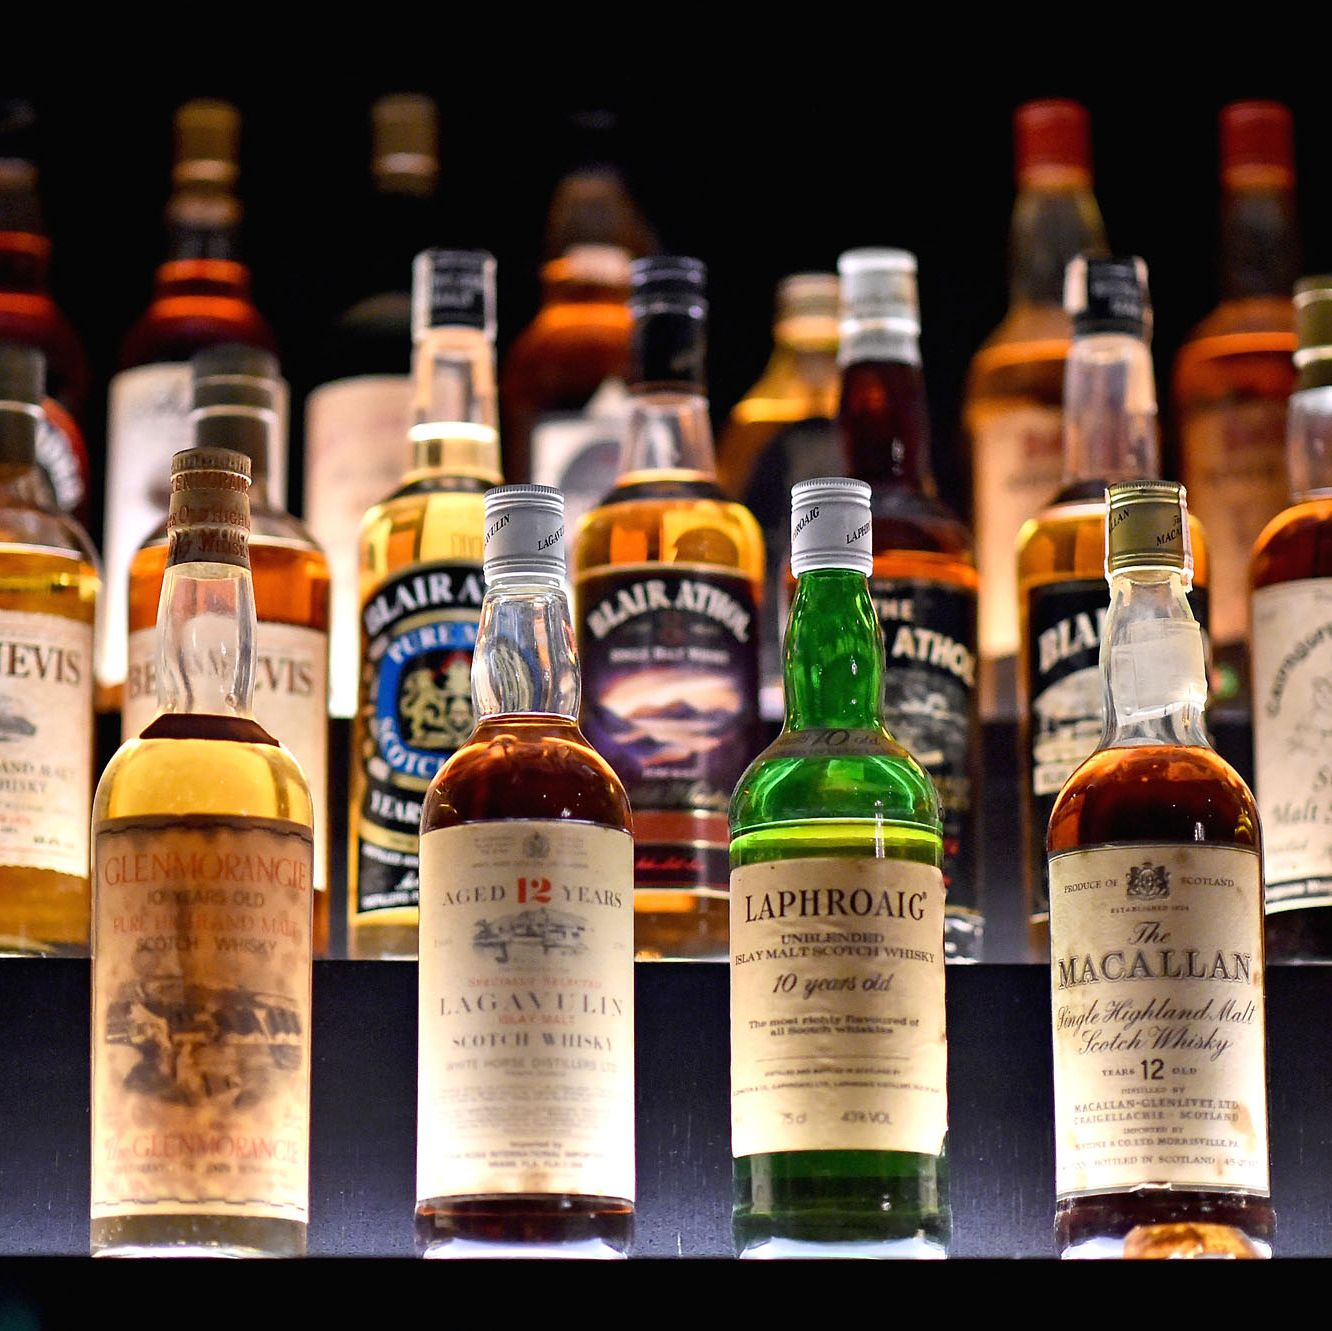 The World's Best Whiskey Is American, According to One Whiskey Expert